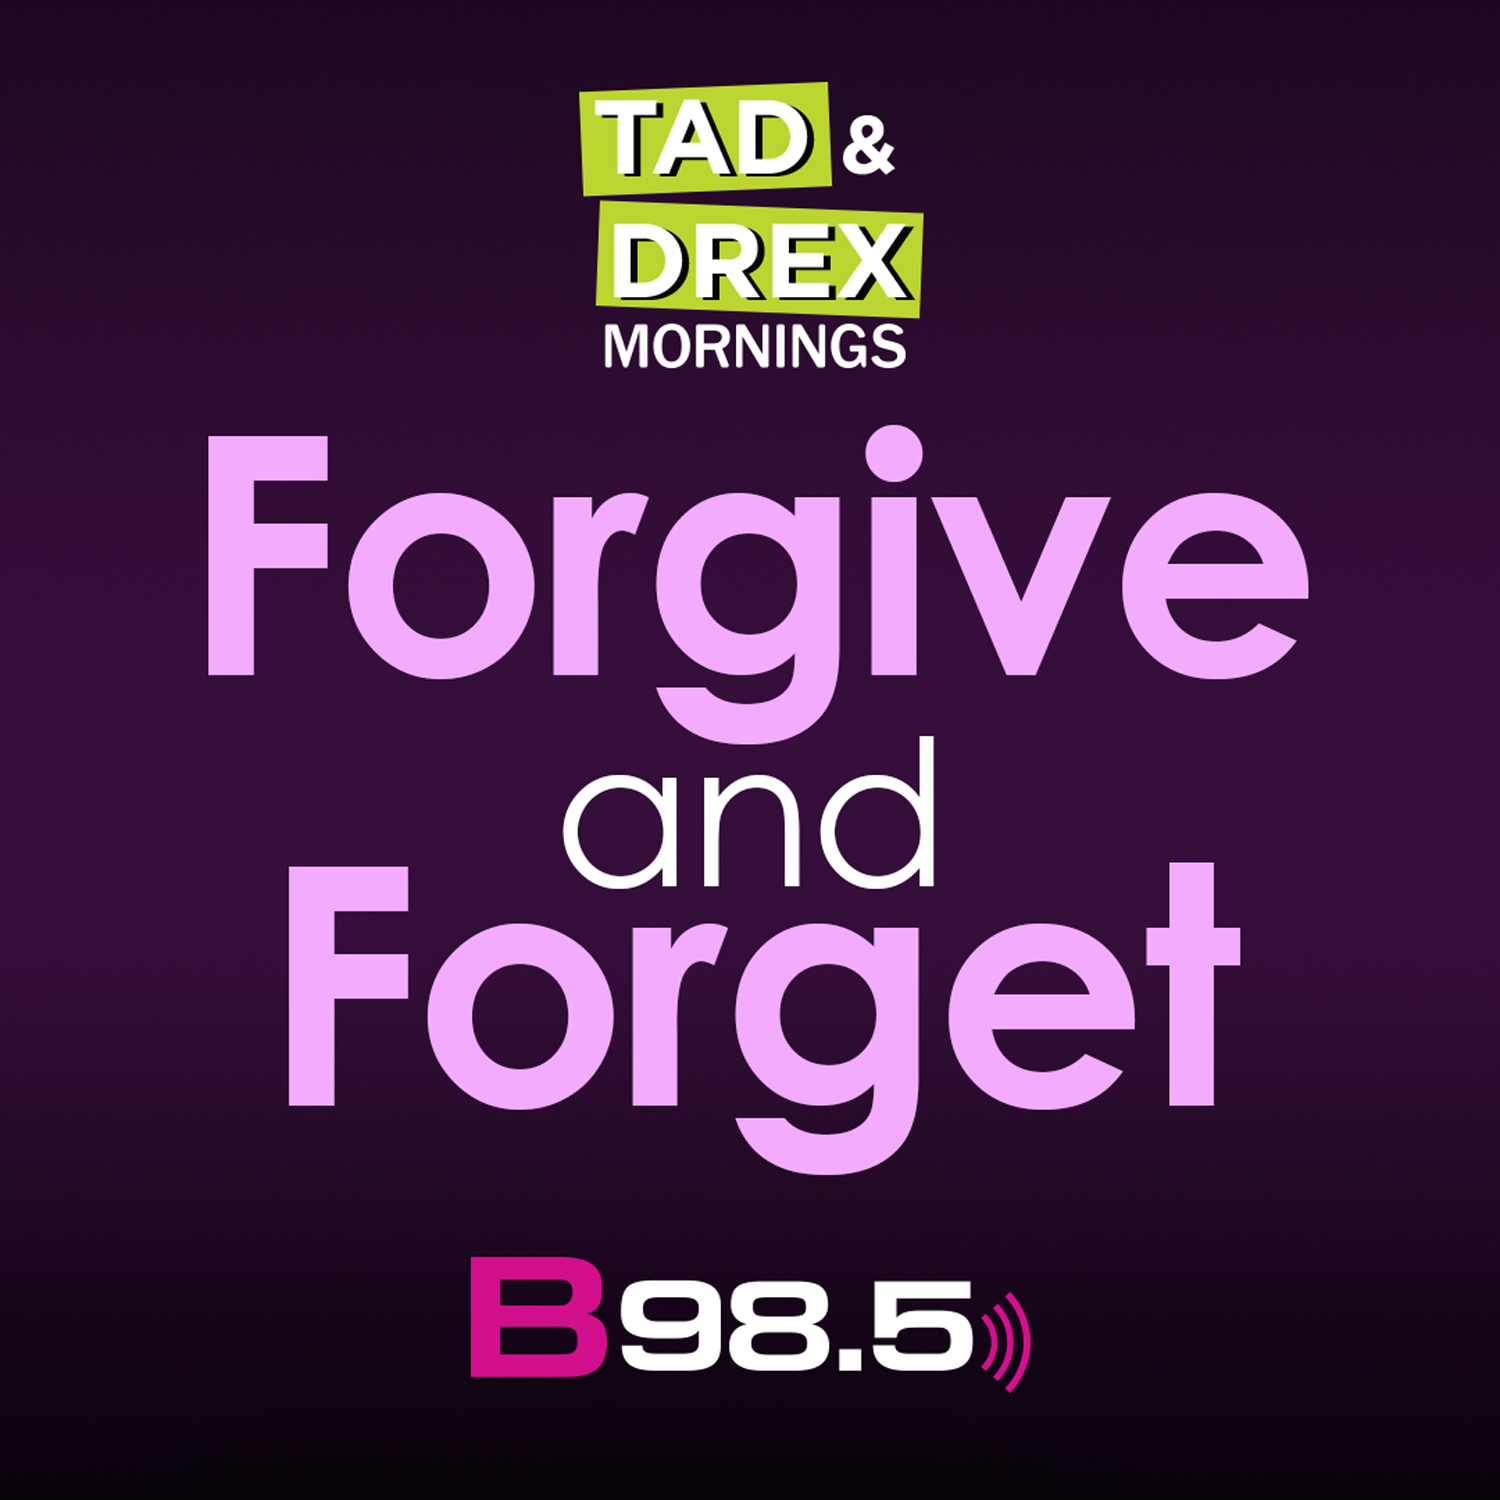 Tad & Drex Mornings: Forgive and Forget